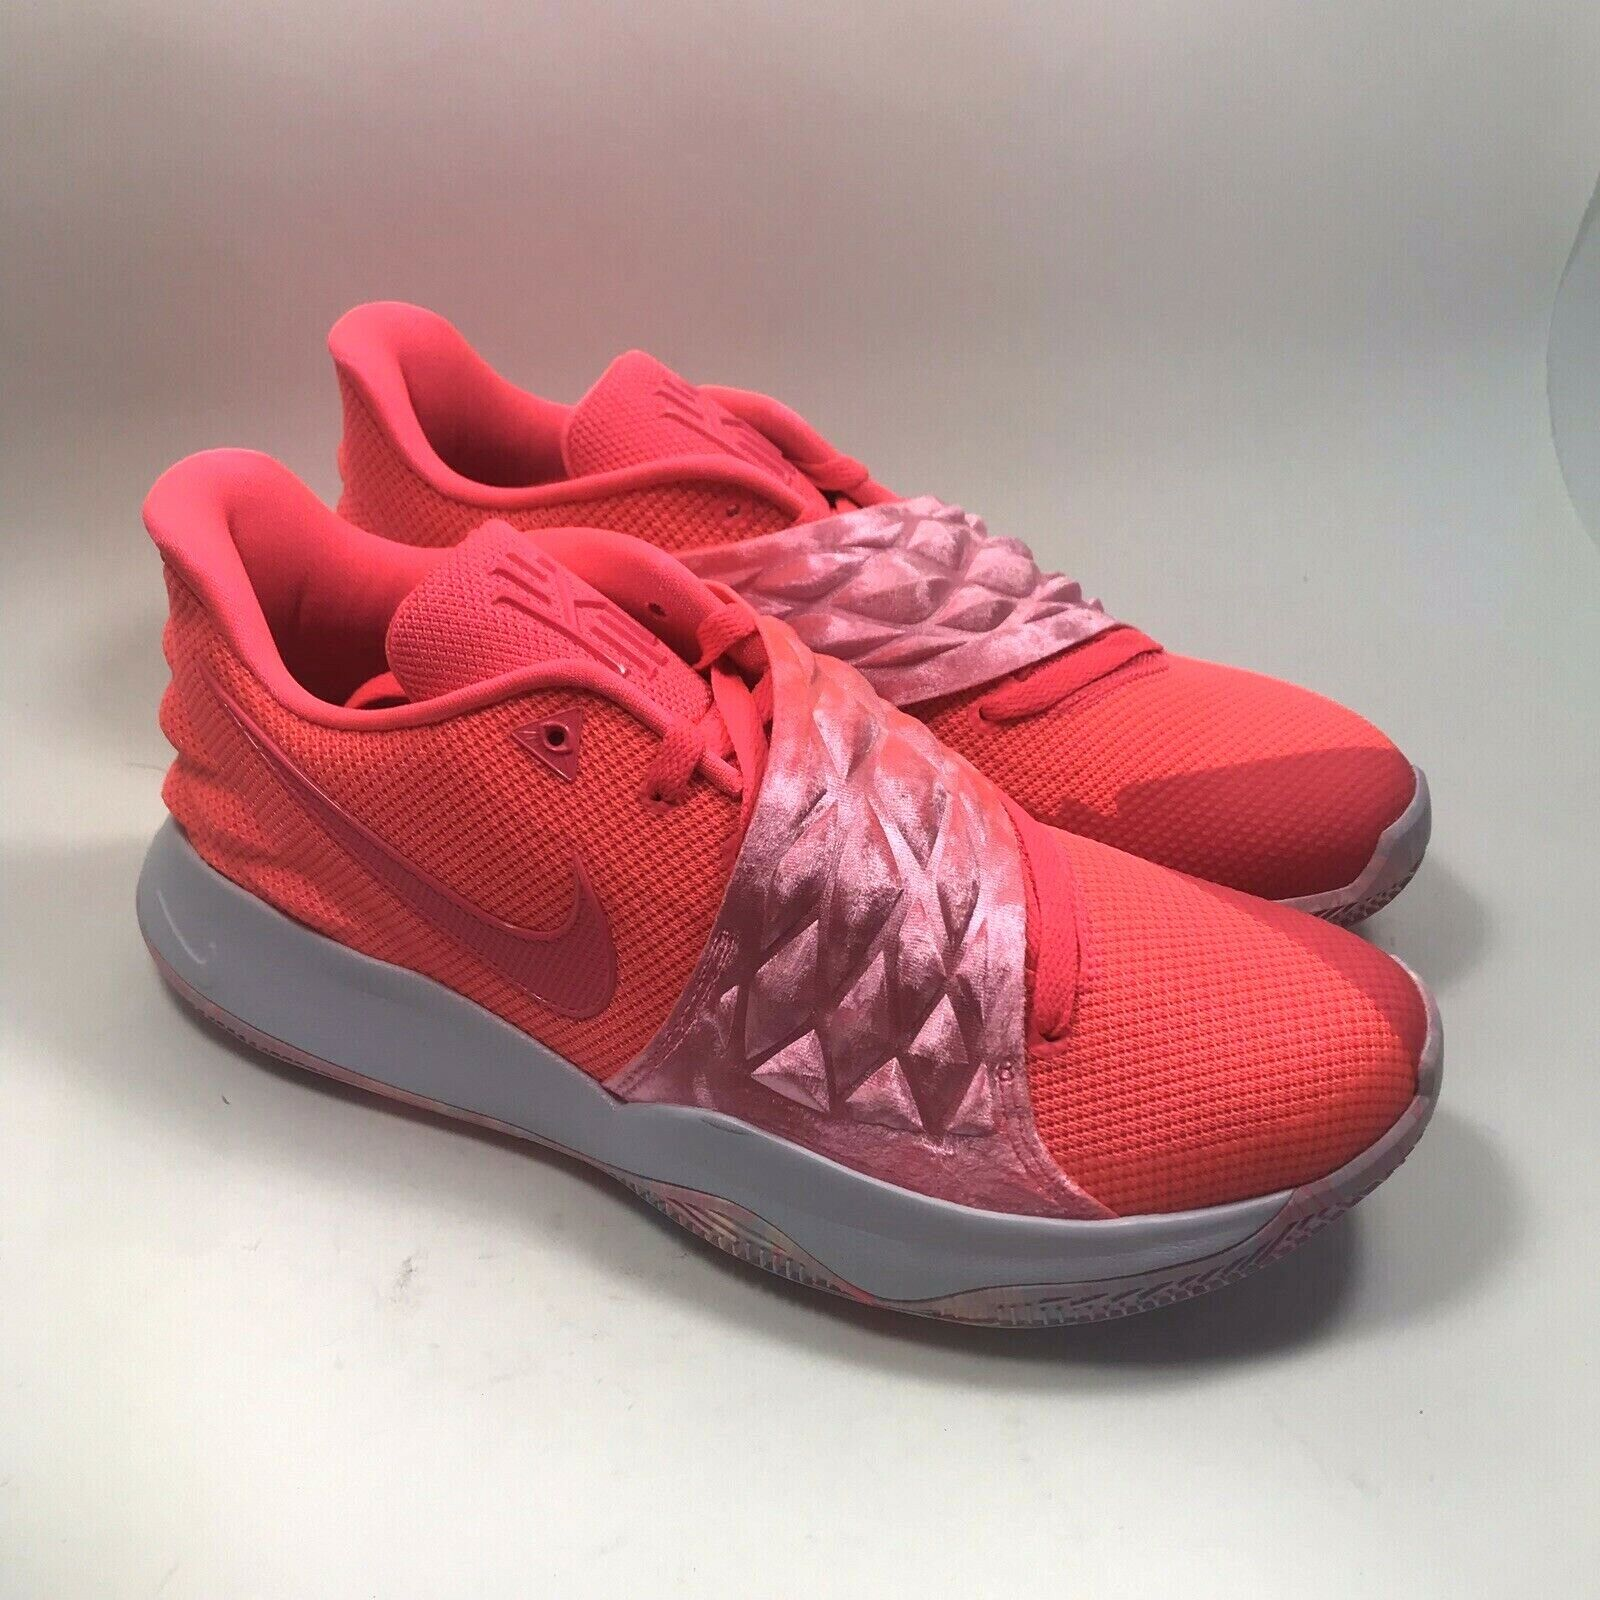 Nike Kyrie Low  Hot Punch  mens Size 12 AO8979-600 Pink Basketball shoes